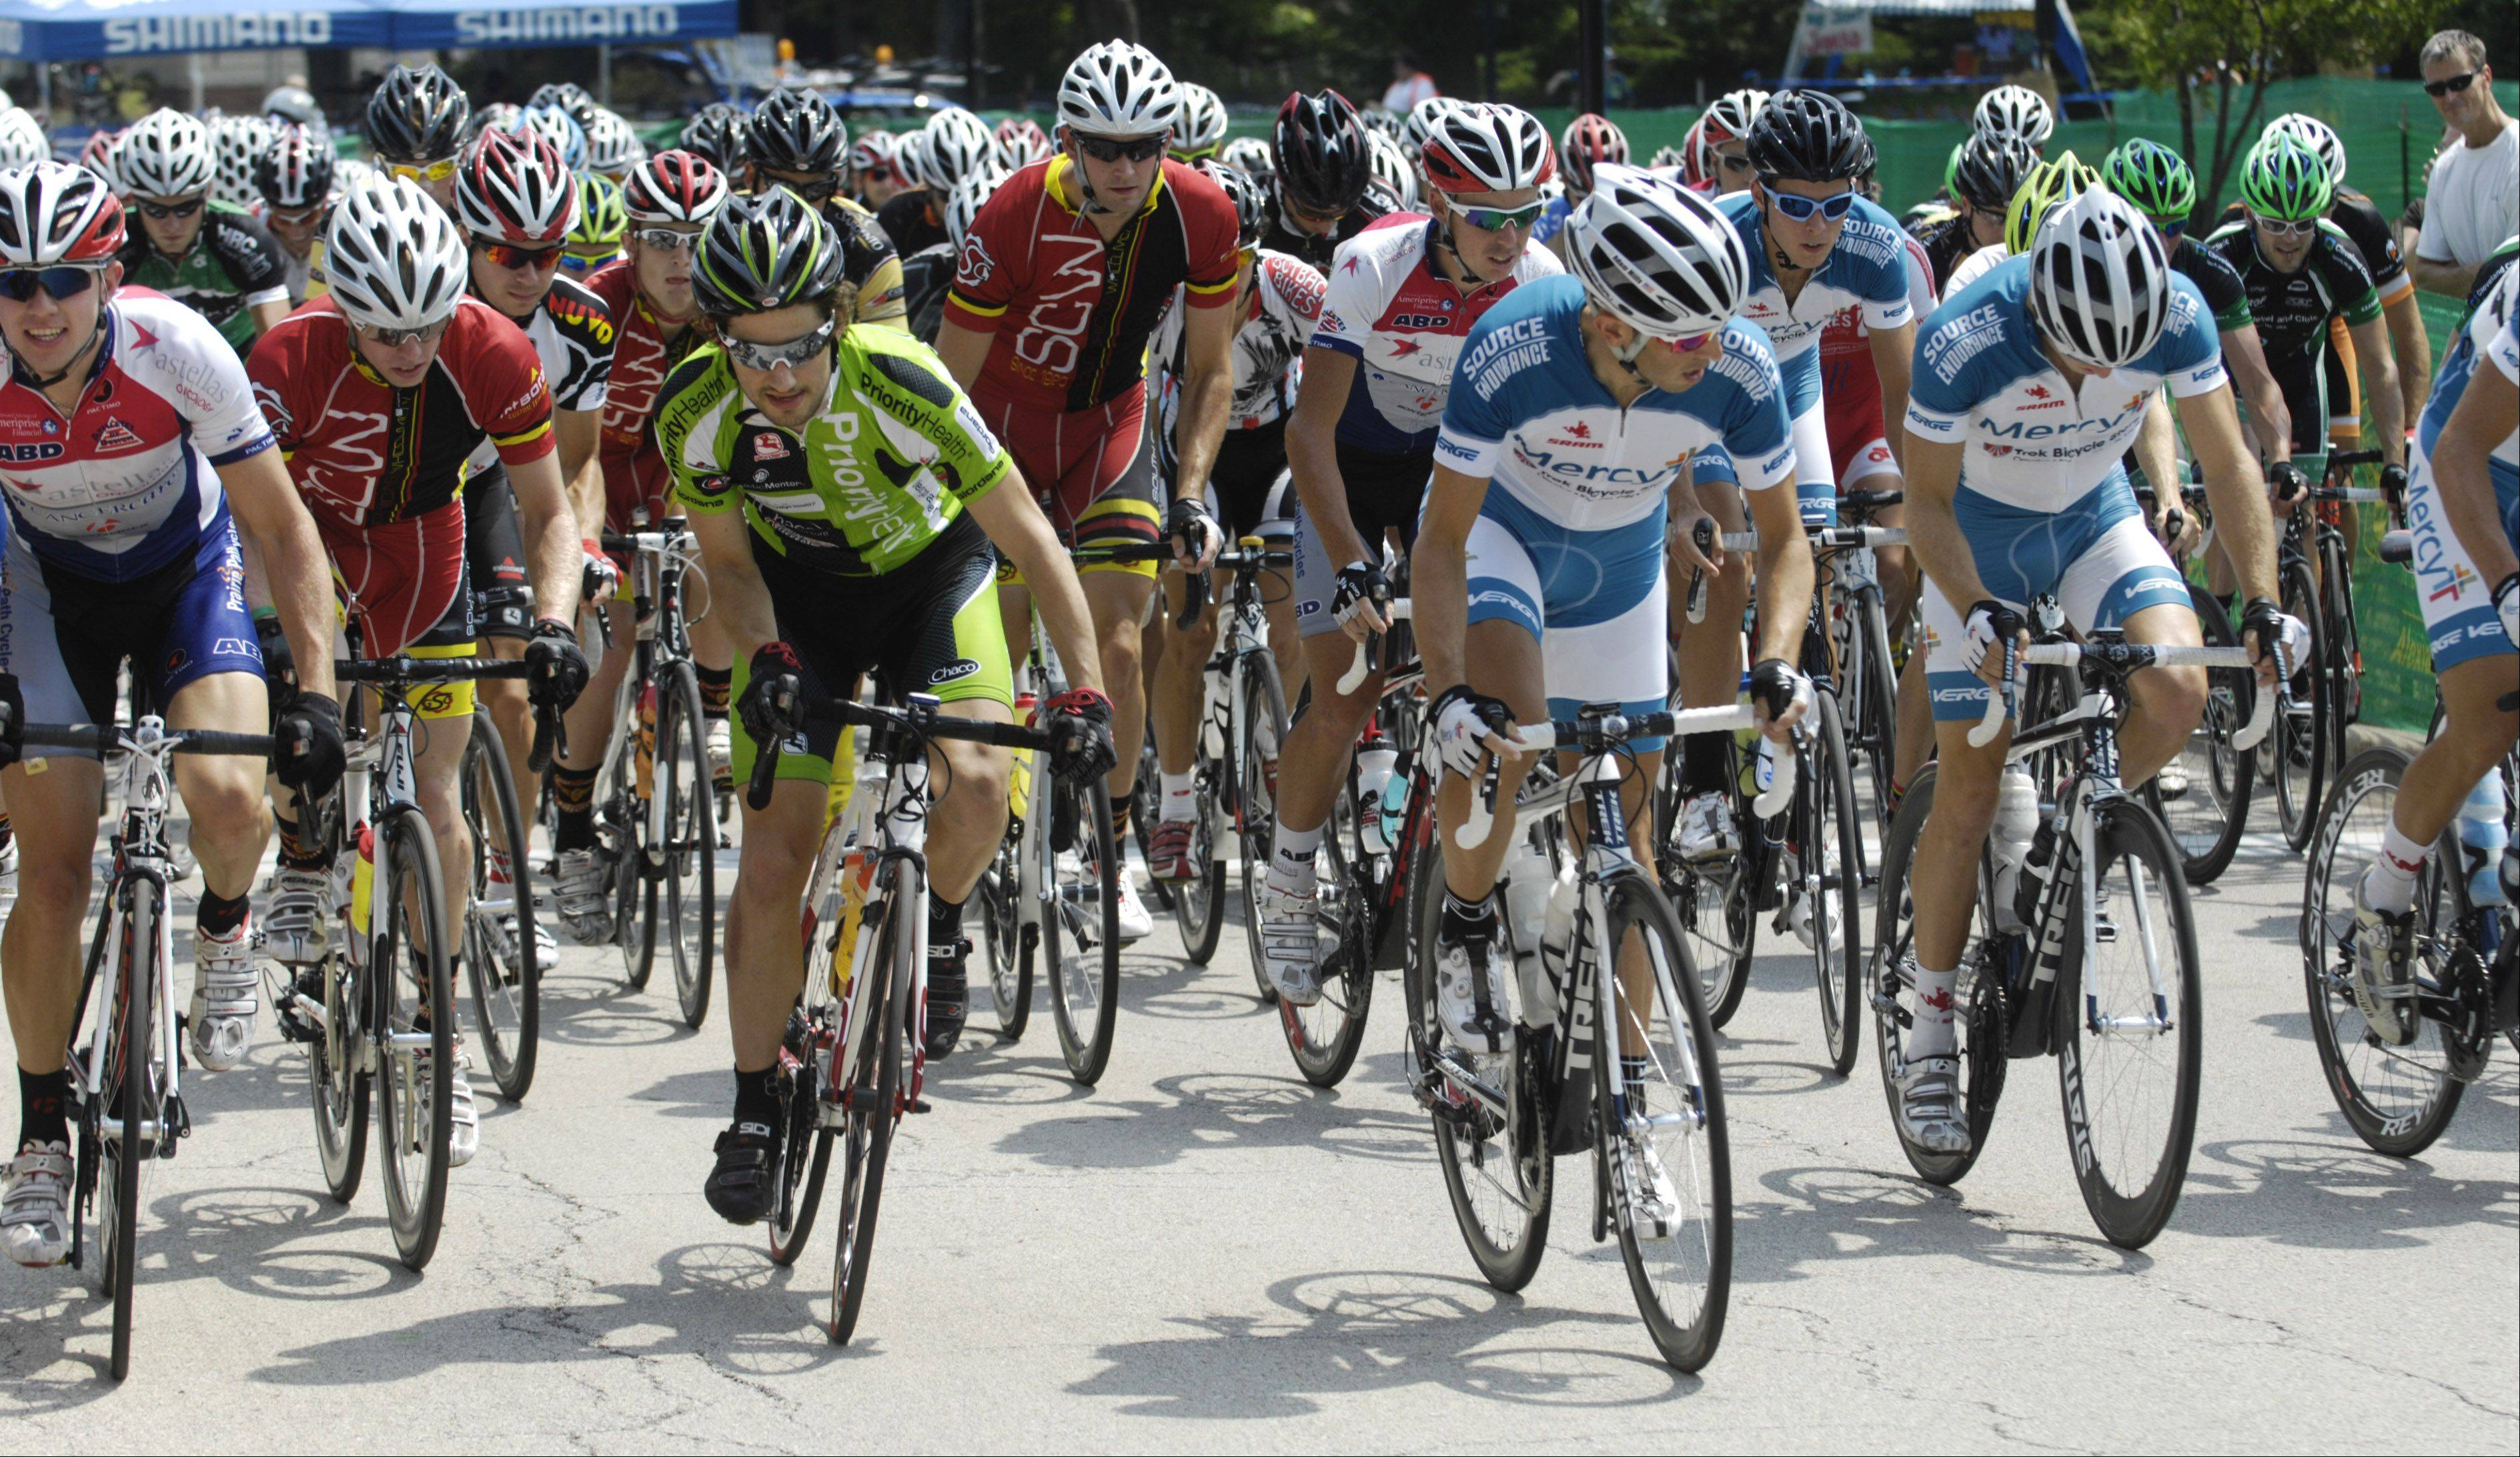 Riders compete in the ComEd Category 1/2 during the Tour of Elk Grove Saturday.